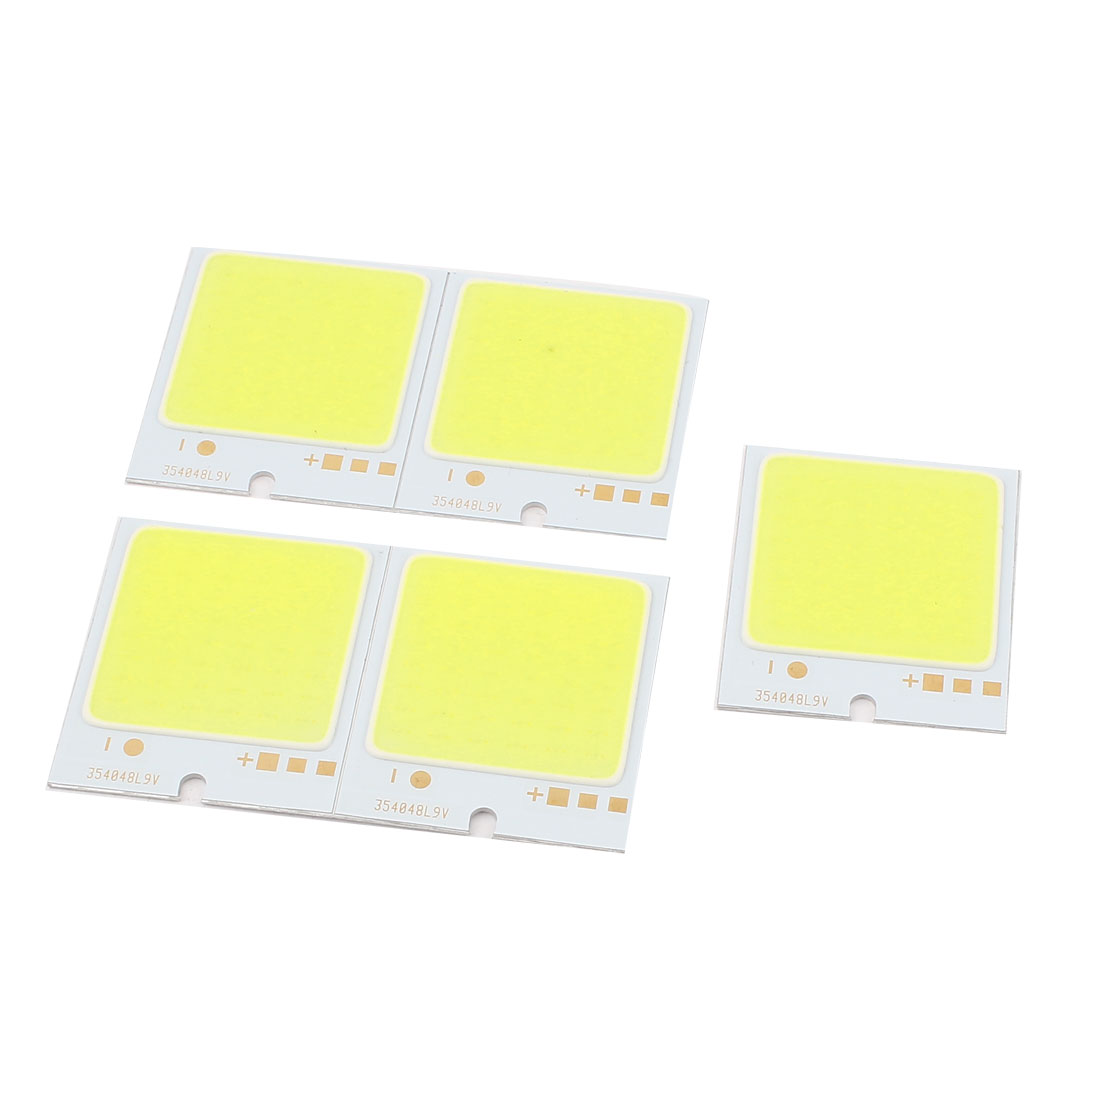 5PCS 4W DC9-11V 400mA 80-90LM/W White LED Light COB Lamp Bead Chip